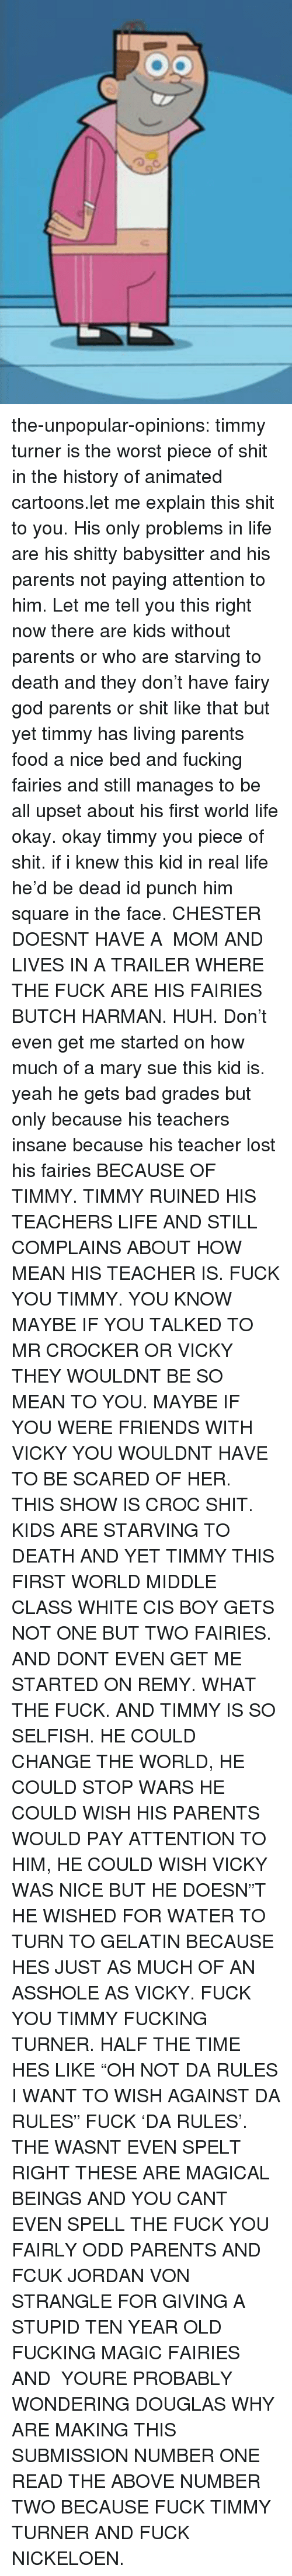 "gelatin: the-unpopular-opinions:  timmy turner is the worst piece of shit in the history of animated cartoons.let me explain this shit to you. His only problems in life are his shitty babysitter and his parents not paying attention to him. Let me tell you this right now there are kids without parents or who are starving to death and they don't have fairy god parents or shit like that but yet timmy has living parents food a nice bed and fucking fairies and still manages to be all upset about his first world life okay. okay timmy you piece of shit. if i knew this kid in real life he'd be dead id punch him square in the face. CHESTER DOESNT HAVE A  MOM AND LIVES IN A TRAILER WHERE THE FUCK ARE HIS FAIRIES BUTCH HARMAN. HUH. Don't even get me started on how much of a mary sue this kid is. yeah he gets bad grades but only because his teachers insane because his teacher lost his fairies BECAUSE OF TIMMY. TIMMY RUINED HIS TEACHERS LIFE AND STILL COMPLAINS ABOUT HOW MEAN HIS TEACHER IS. FUCK YOU TIMMY. YOU KNOW MAYBE IF YOU TALKED TO MR CROCKER OR VICKY THEY WOULDNT BE SO MEAN TO YOU. MAYBE IF YOU WERE FRIENDS WITH VICKY YOU WOULDNT HAVE TO BE SCARED OF HER.  THIS SHOW IS CROC SHIT. KIDS ARE STARVING TO DEATH AND YET TIMMY THIS FIRST WORLD MIDDLE CLASS WHITE CIS BOY GETS NOT ONE BUT TWO FAIRIES. AND DONT EVEN GET ME STARTED ON REMY. WHAT THE FUCK. AND TIMMY IS SO SELFISH. HE COULD CHANGE THE WORLD, HE COULD STOP WARS HE COULD WISH HIS PARENTS WOULD PAY ATTENTION TO HIM, HE COULD WISH VICKY WAS NICE BUT HE DOESN""T HE WISHED FOR WATER TO TURN TO GELATIN BECAUSE HES JUST AS MUCH OF AN ASSHOLE AS VICKY. FUCK YOU TIMMY FUCKING TURNER. HALF THE TIME HES LIKE ""OH NOT DA RULES I WANT TO WISH AGAINST DA RULES"" FUCK 'DA RULES'. THE WASNT EVEN SPELT RIGHT THESE ARE MAGICAL BEINGS AND YOU CANT EVEN SPELL THE FUCK YOU FAIRLY ODD PARENTS AND FCUK JORDAN VON STRANGLE FOR GIVING A STUPID TEN YEAR OLD FUCKING MAGIC FAIRIES AND  YOURE PROBABLY WONDERING DOUGLAS WHY ARE MAKING THIS SUBMISSION NUMBER ONE READ THE ABOVE NUMBER TWO BECAUSE FUCK TIMMY TURNER AND FUCK NICKELOEN."